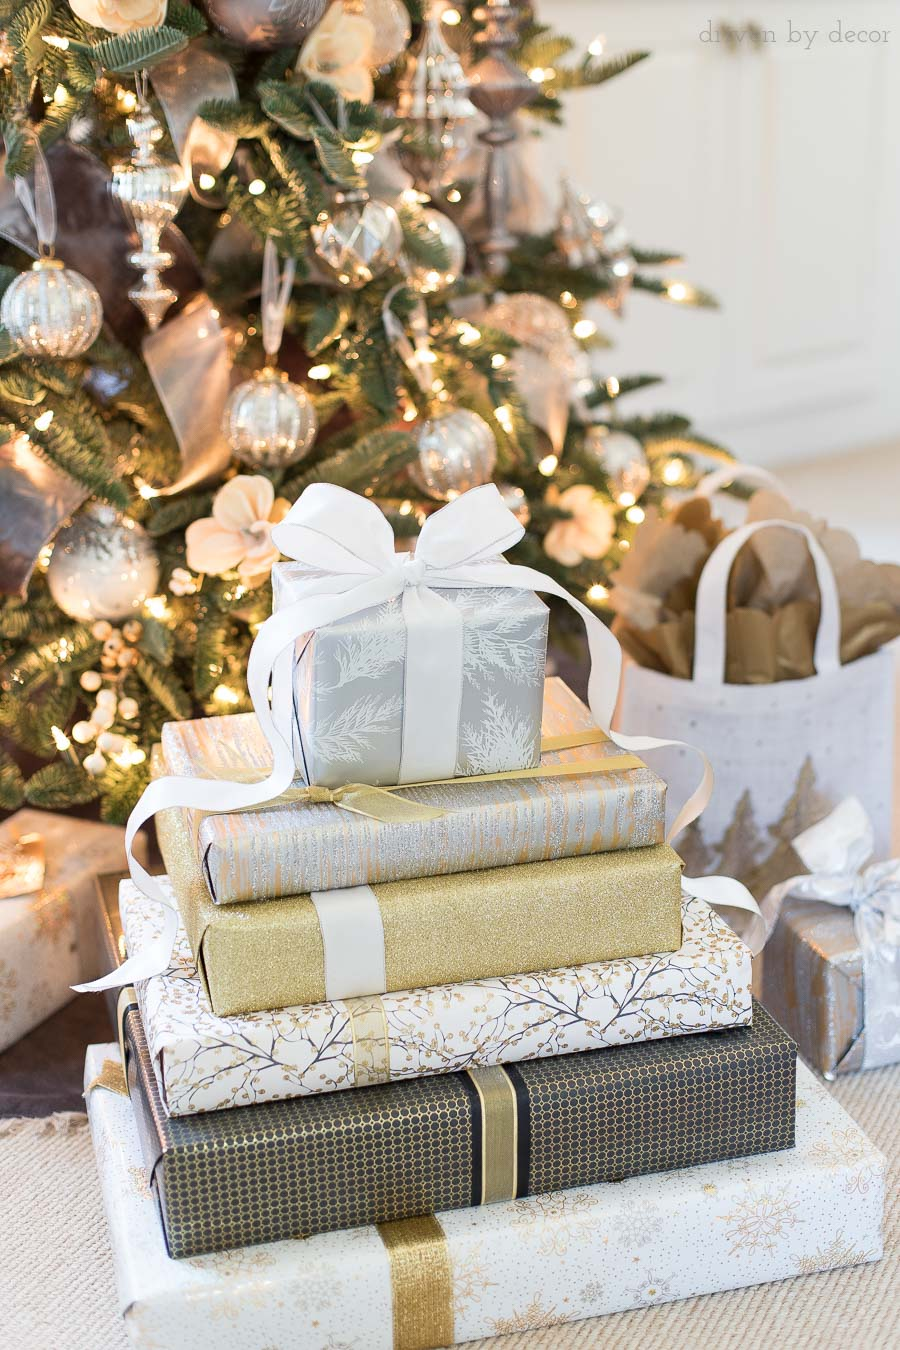 Loving the gold and silver metallics gift wrap and ribbon and how it all coordinates so well together!